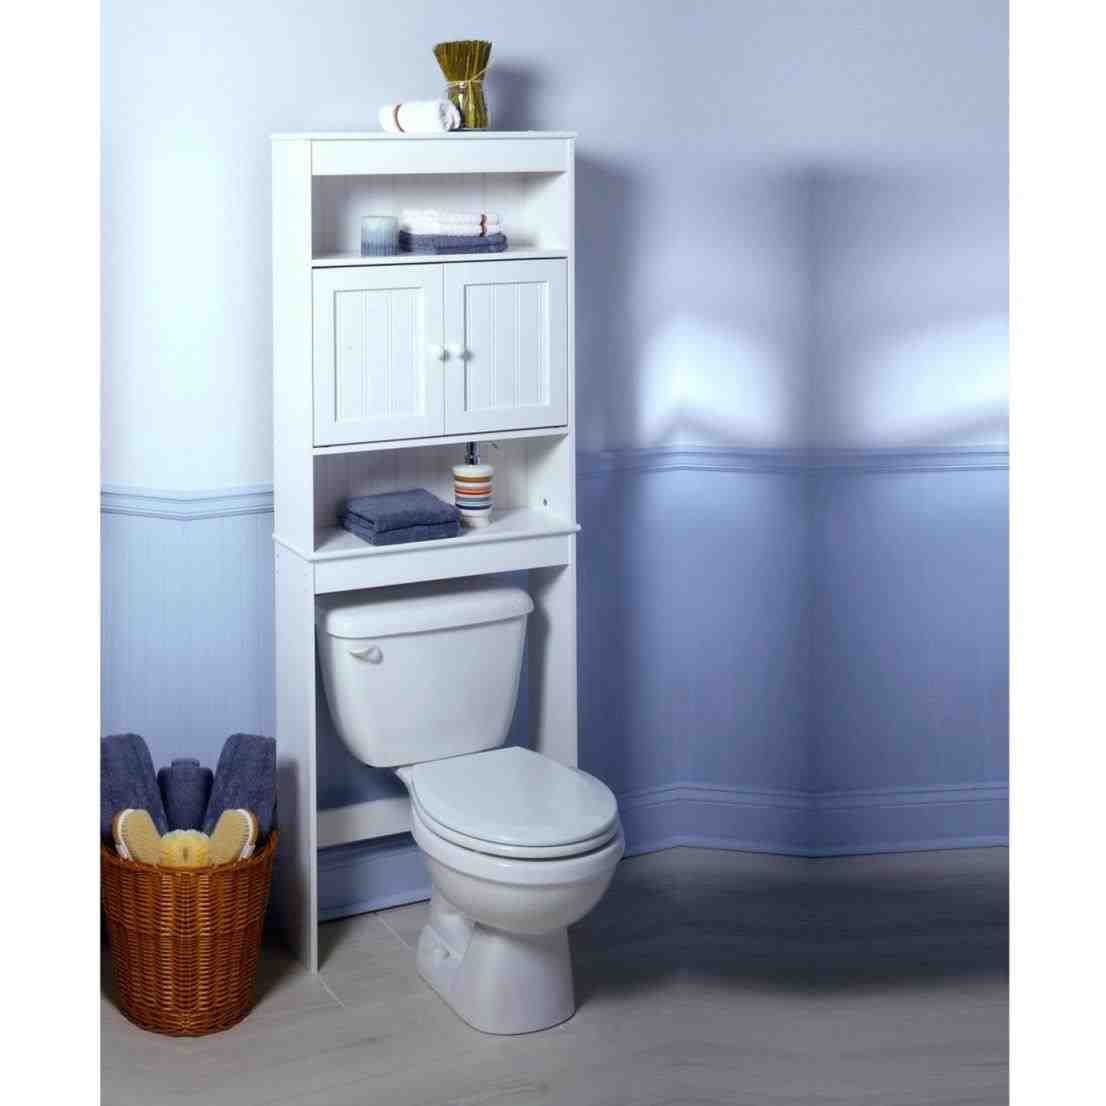 Etonnant This Bathroom Stand Over Toilet   Full Size Of Bathroom Cabinets:vanity For  Bathroom Bathroom Cabinets Floor Standing Over The Toilet Large Size Of  Bathroom ...